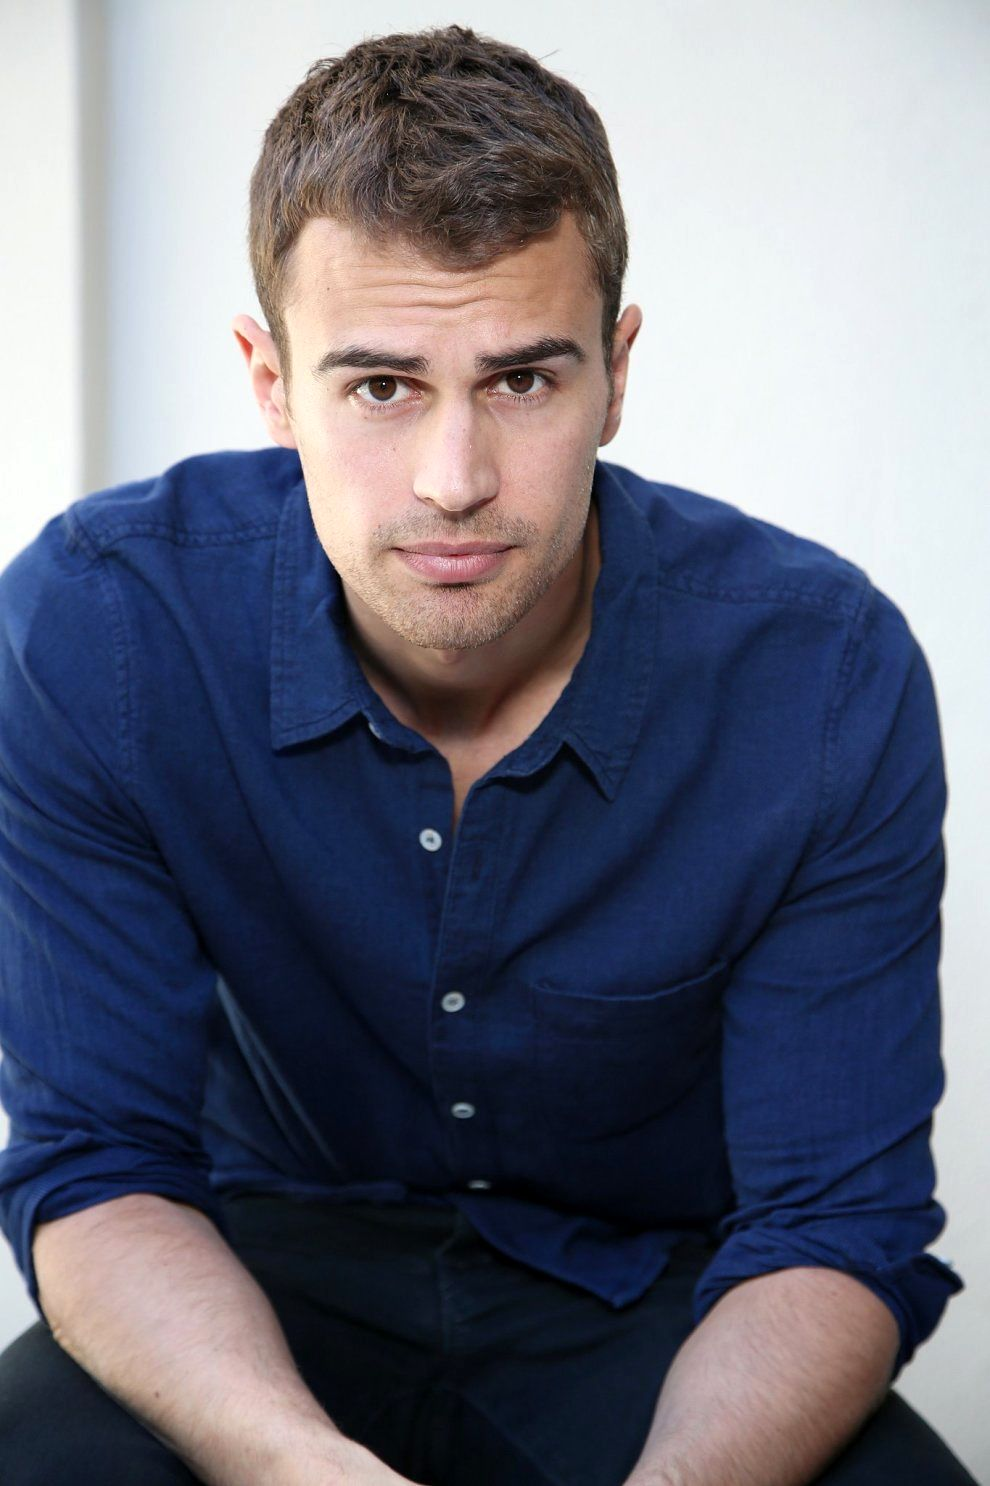 Divergent's' Theo James a fresh Hollywood flame - The San Diego Union-Tribune